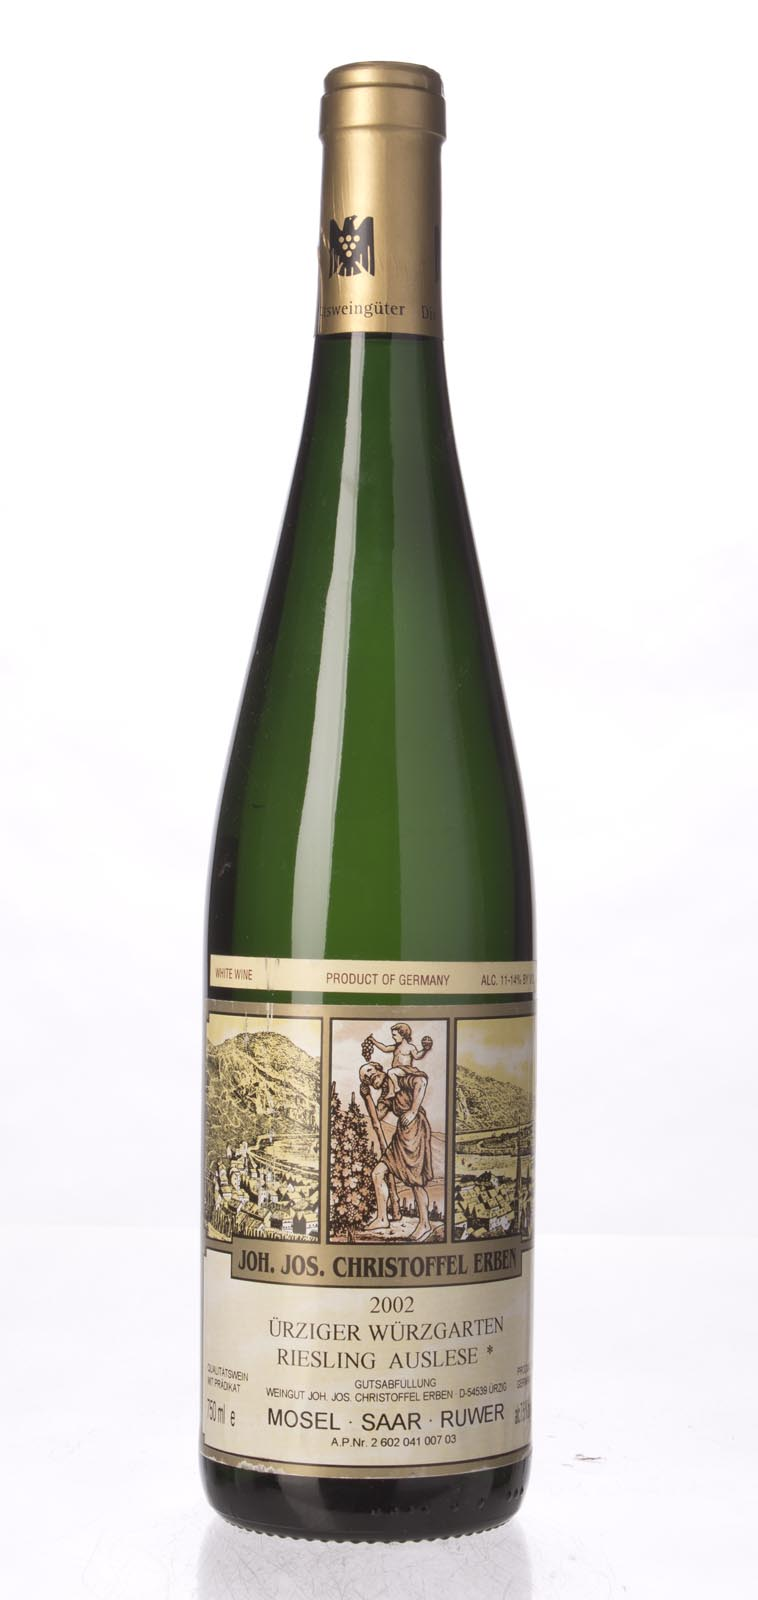 J. J. Christoffel Urziger Wurzgarten Riesling Auslese* Gold Capsule 2002, 750mL () from The BPW - Merchants of rare and fine wines.